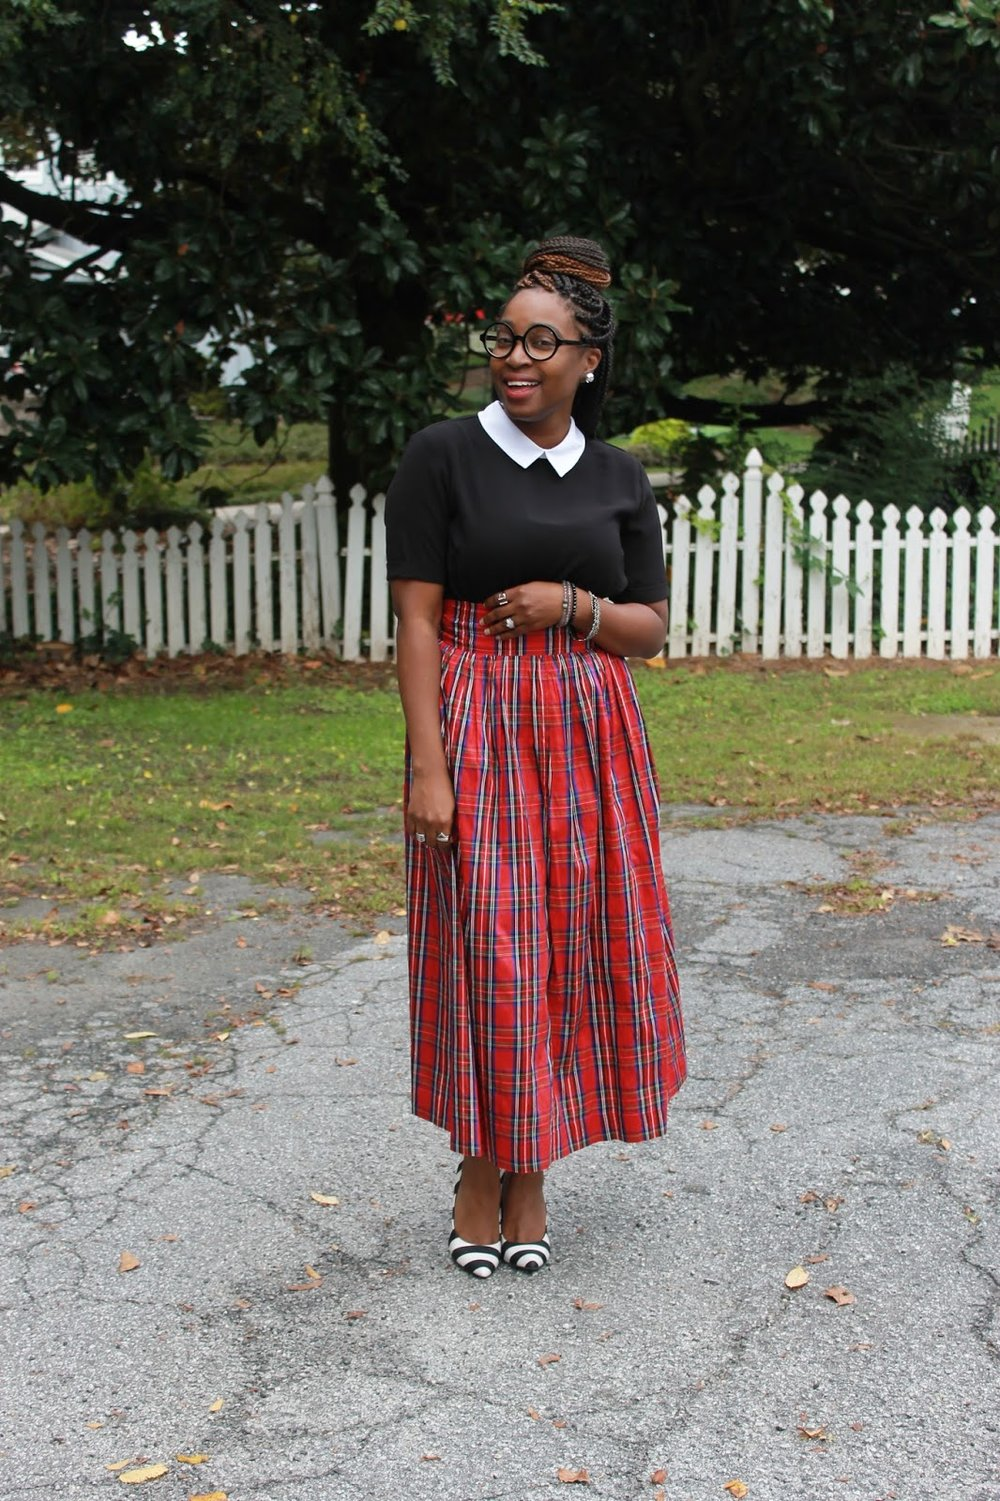 Atlanta style blogger, Street Style, Atlanta blogger, style blogger, blogger, tartan print skirt, mixed prints, black and white top, striped shoes